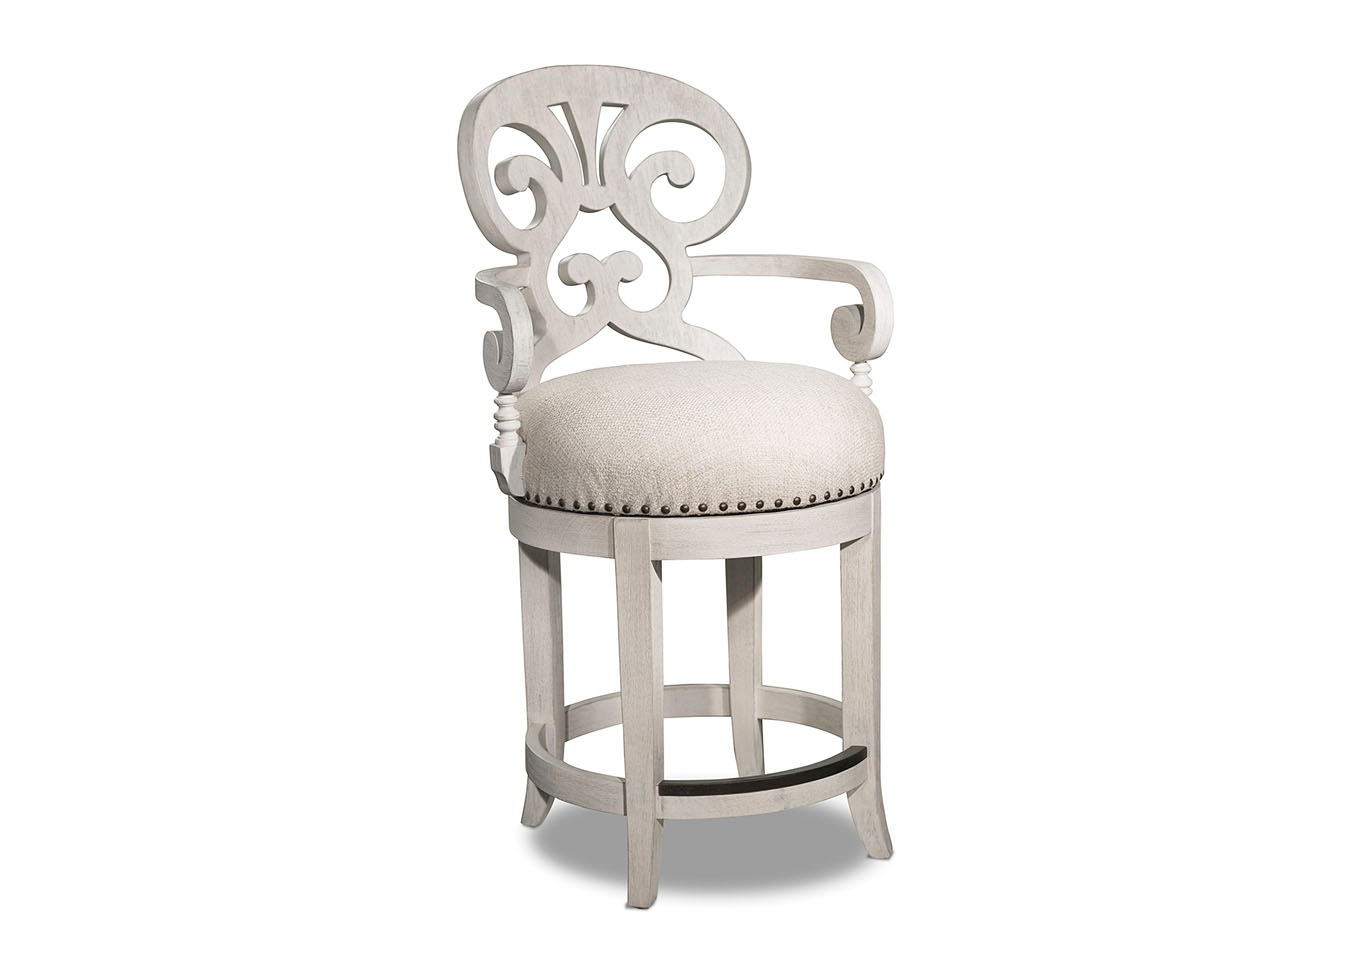 Jesup Furniture Outlet Mimosa Cottage Fabric Counter Stool